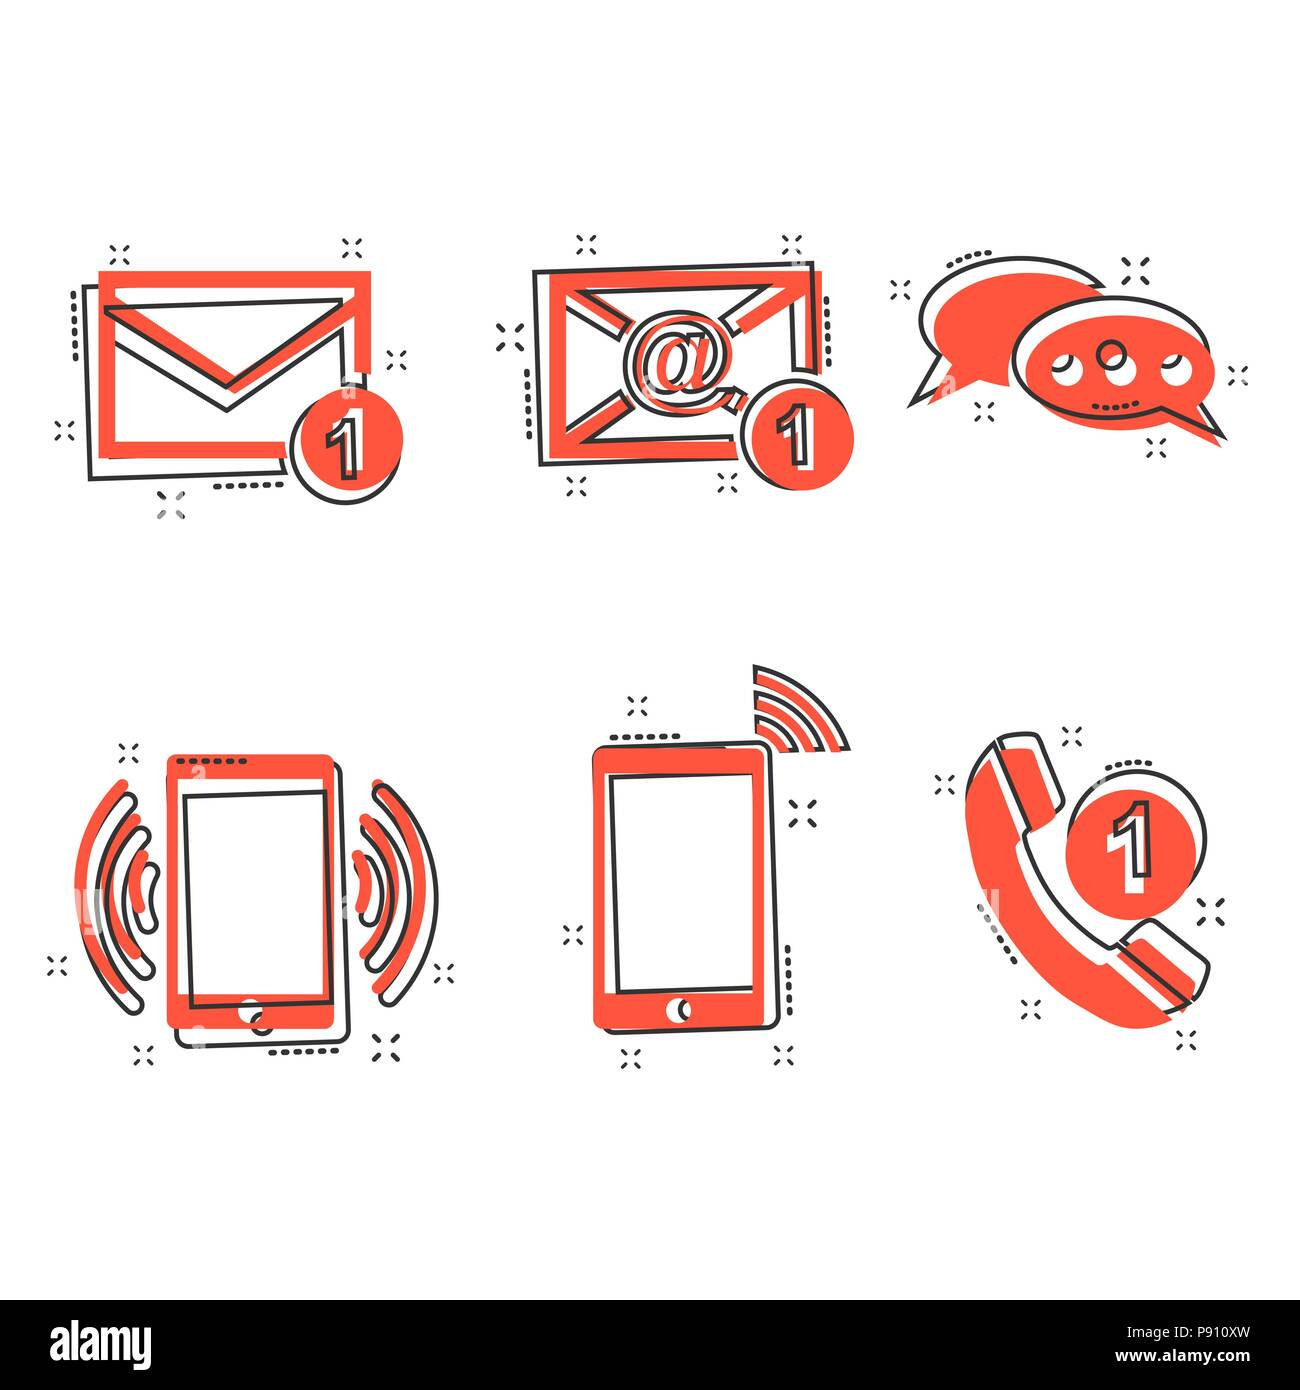 Vector cartoon contact buttons icon in comic style. Email, envelope, phone, mobile sign illustration pictogram. Communication business splash effect c - Stock Image